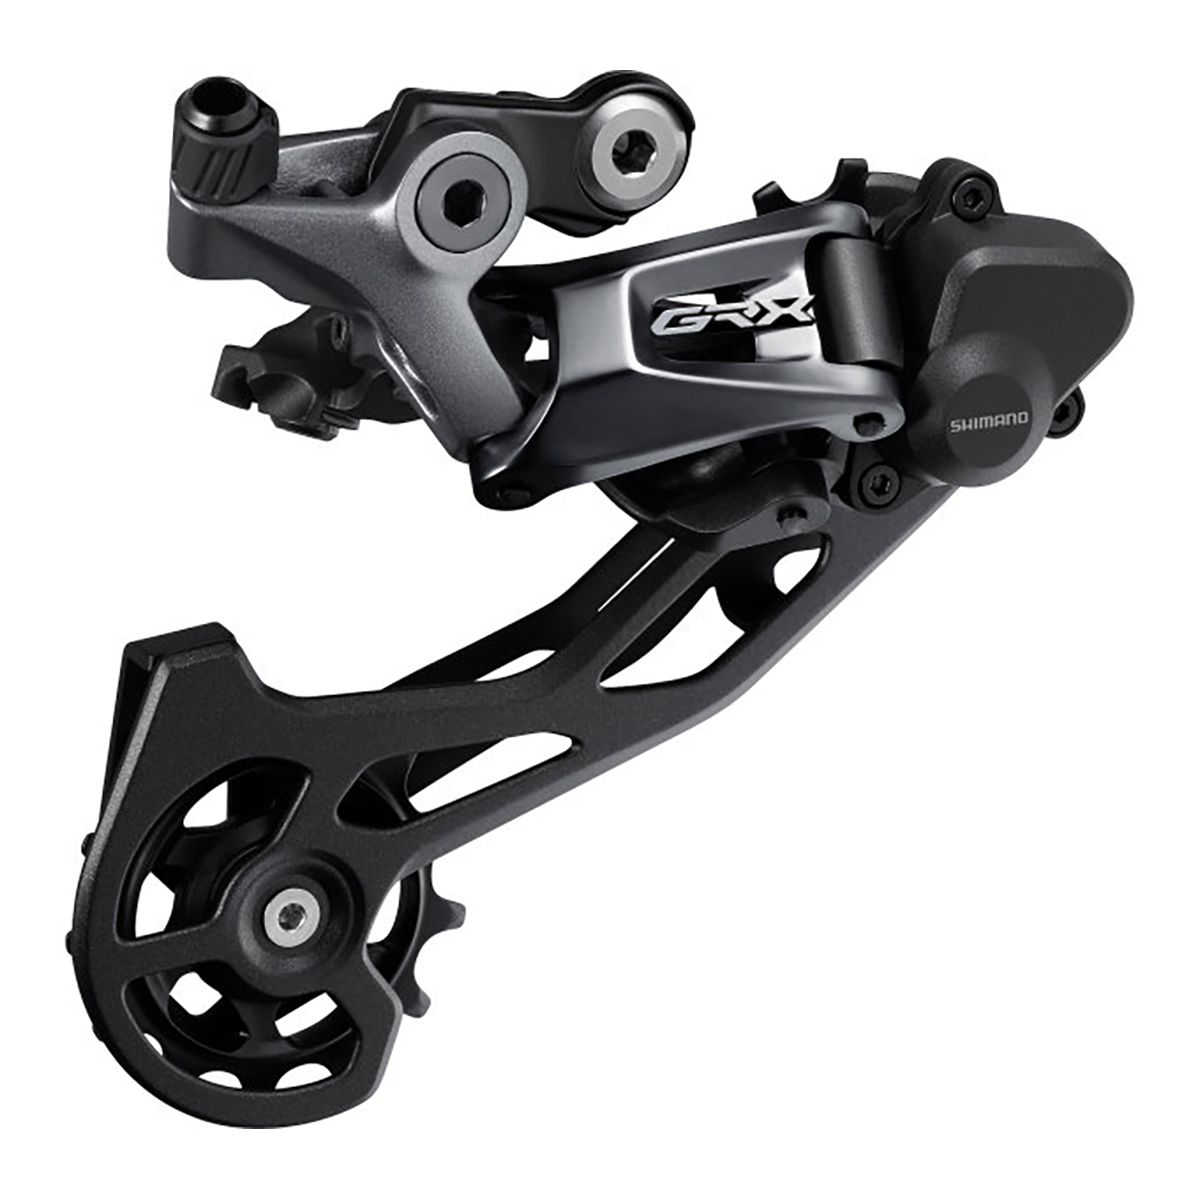 GRX Rear Derailleur 11-speed RX810 / RX812